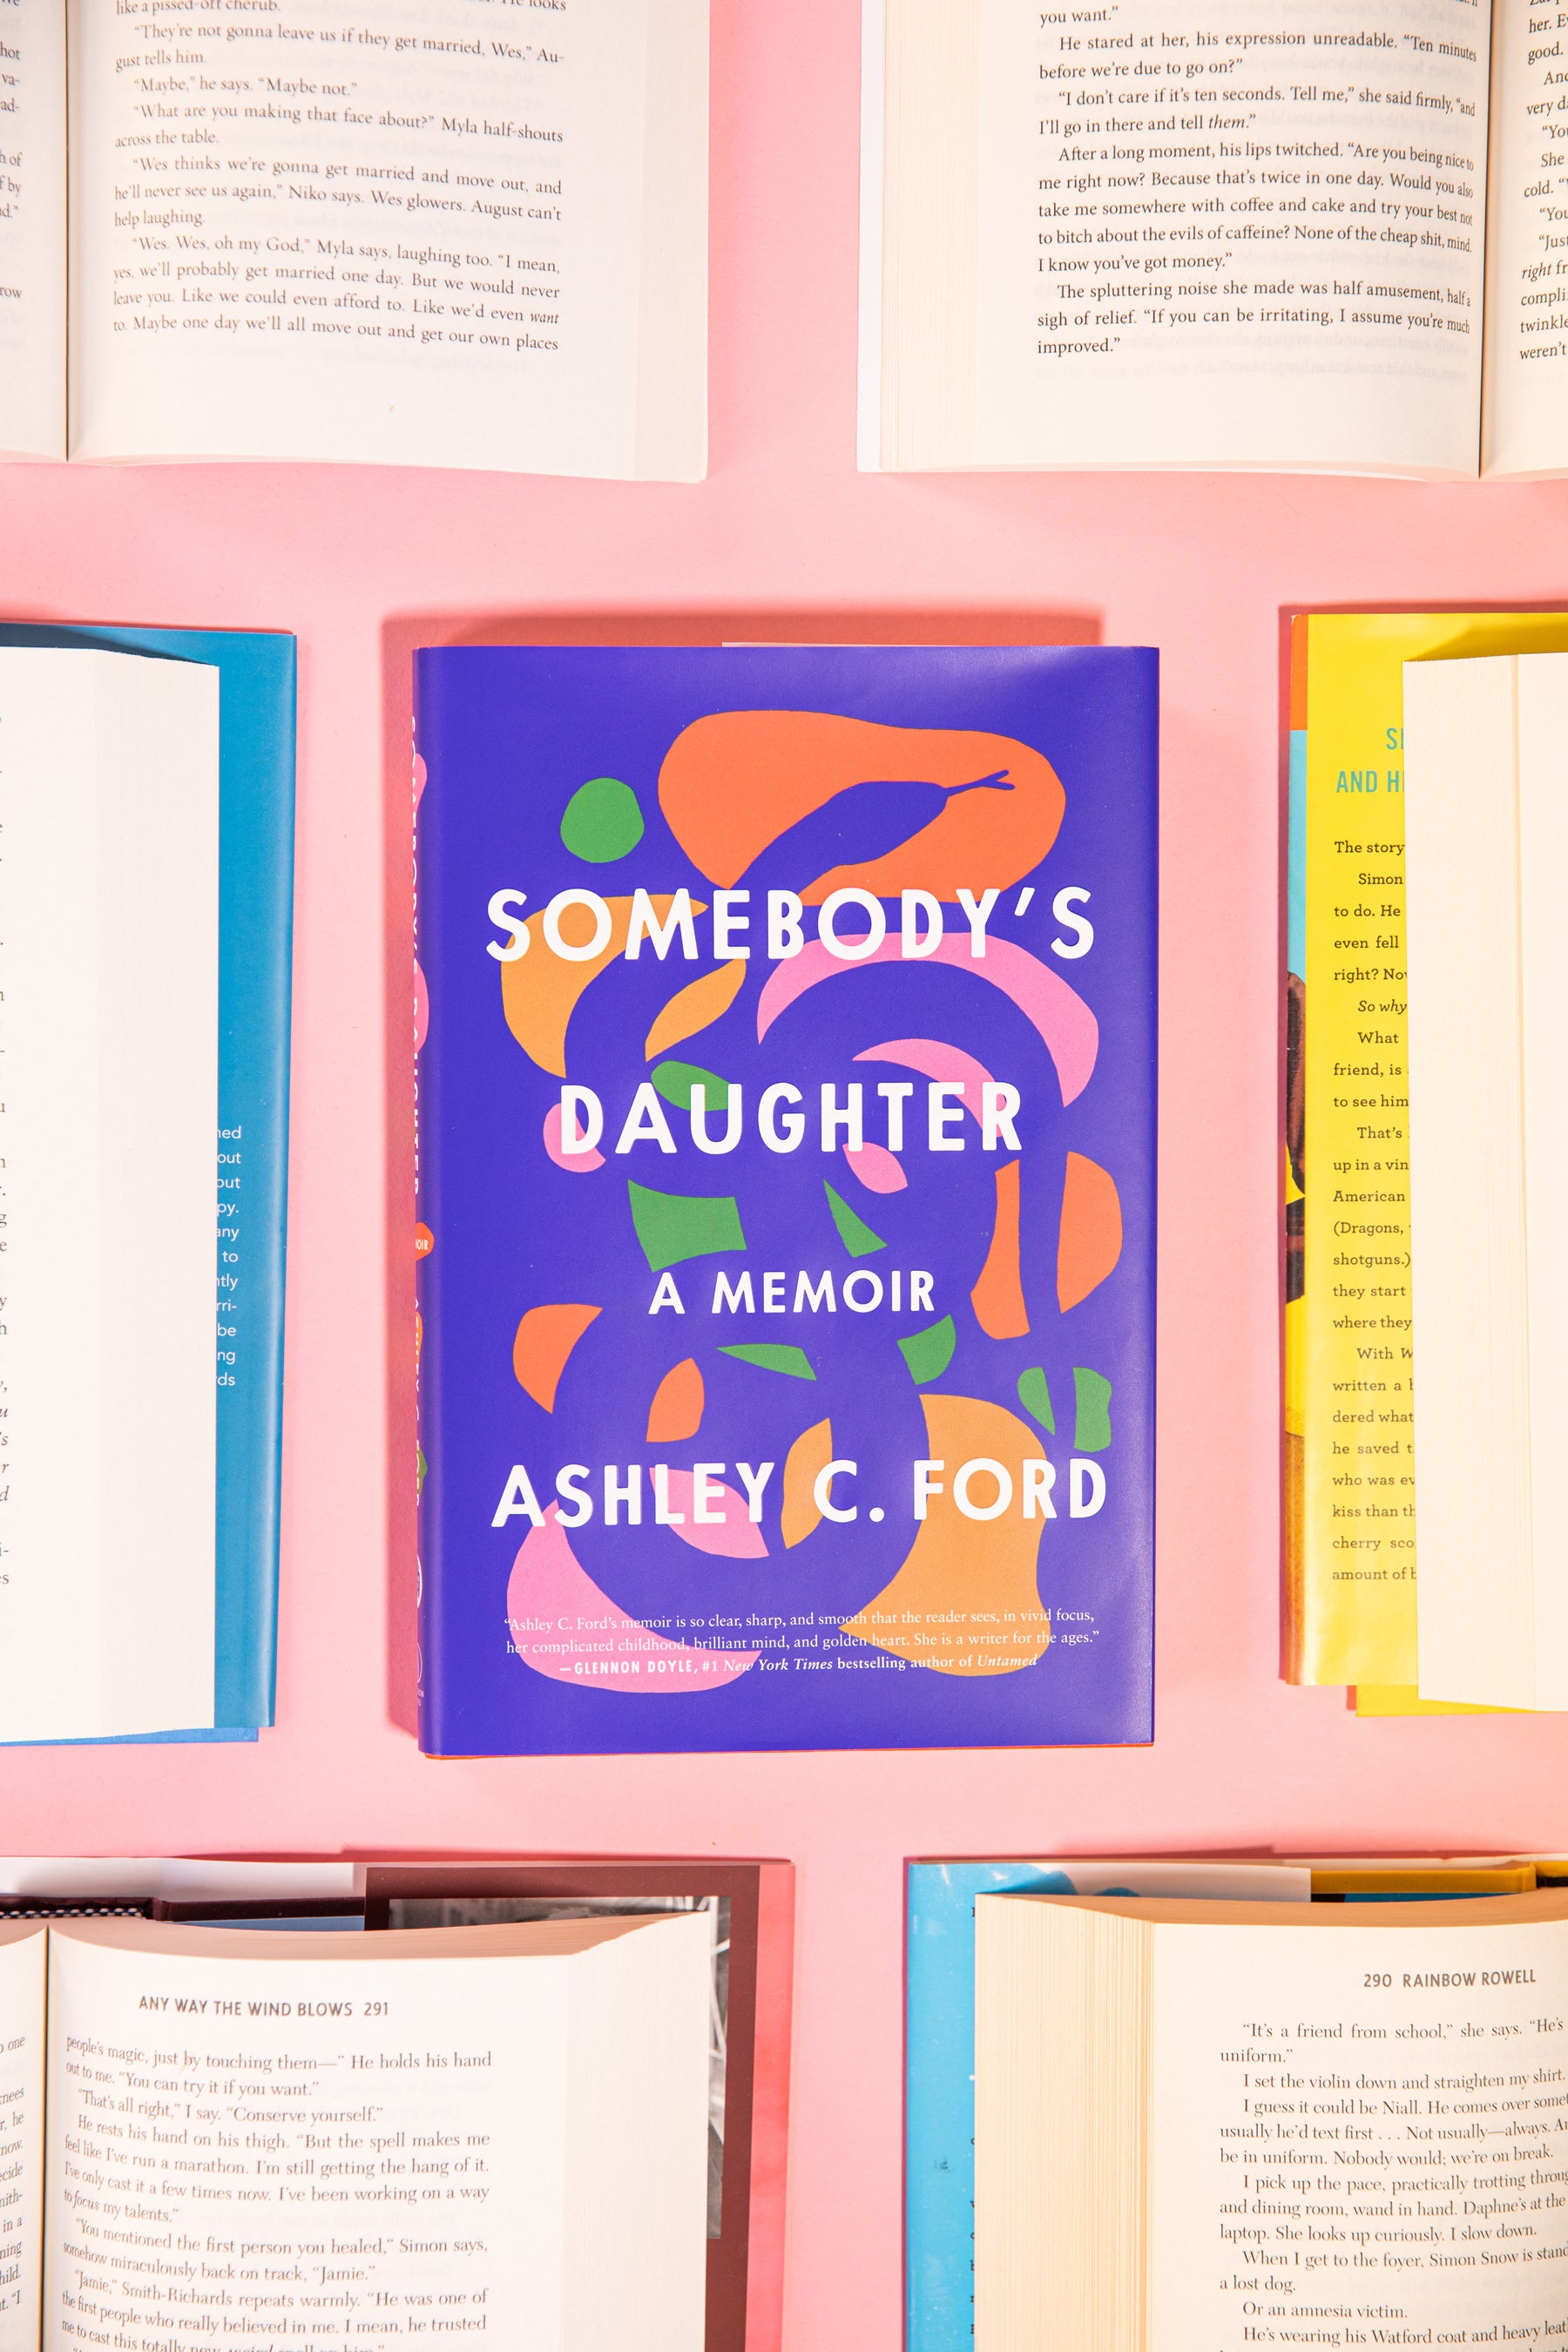 Somebody's Daughter, by Ashley C. Ford